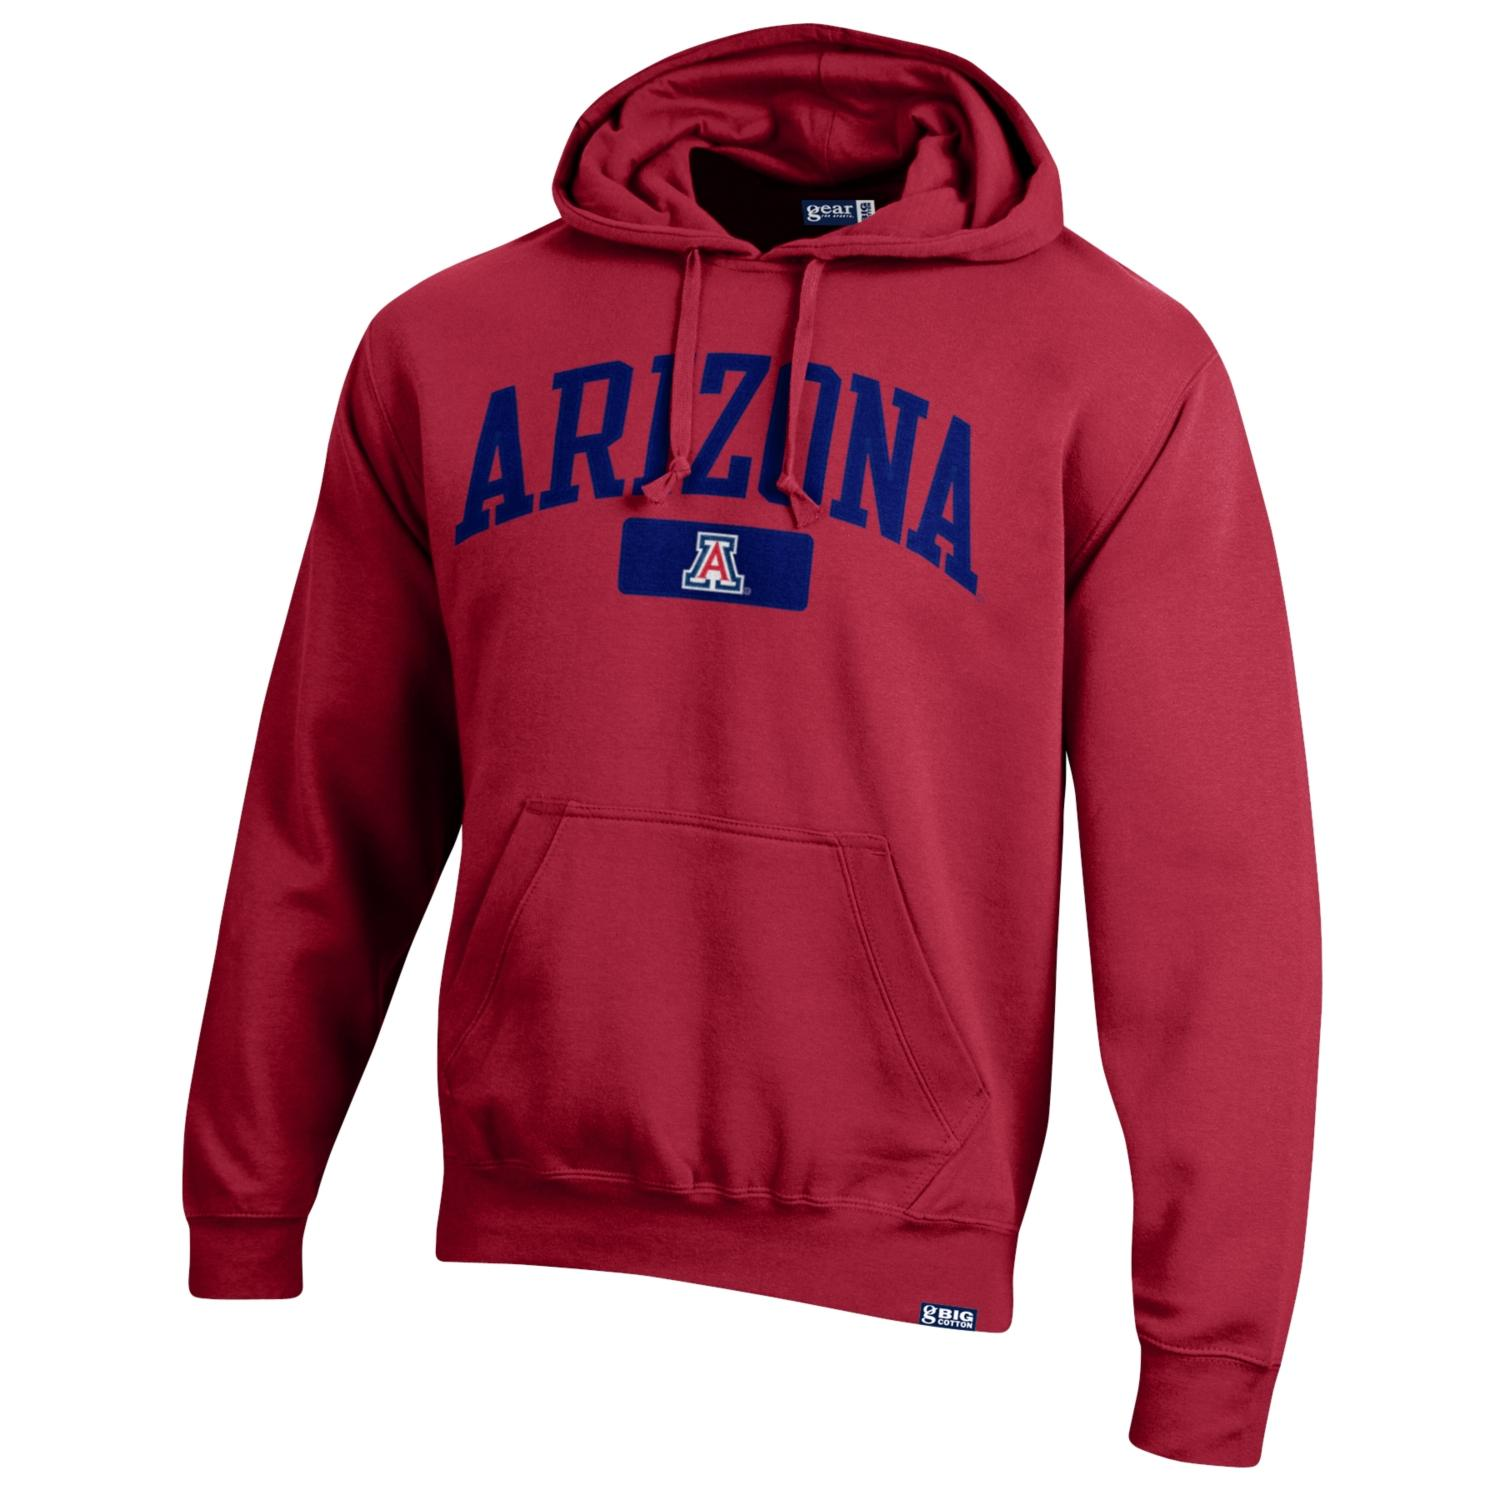 Gear For Sports: Arizona Big Cotton Hood Red